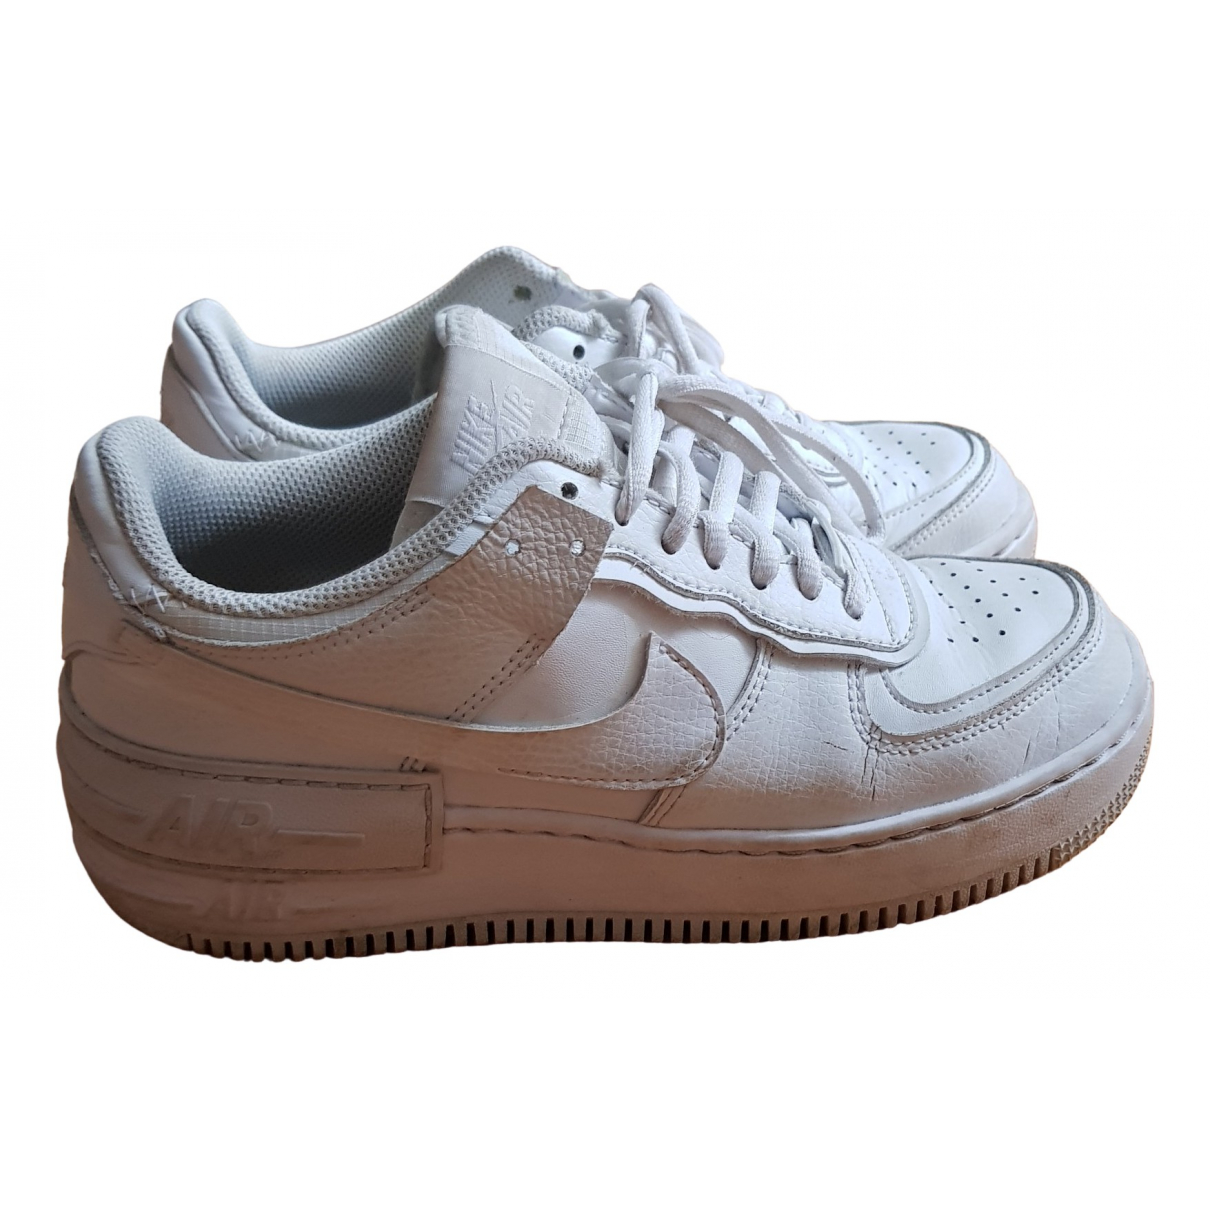 Nike Air Force 1 White Leather Trainers for Women 37.5 EU